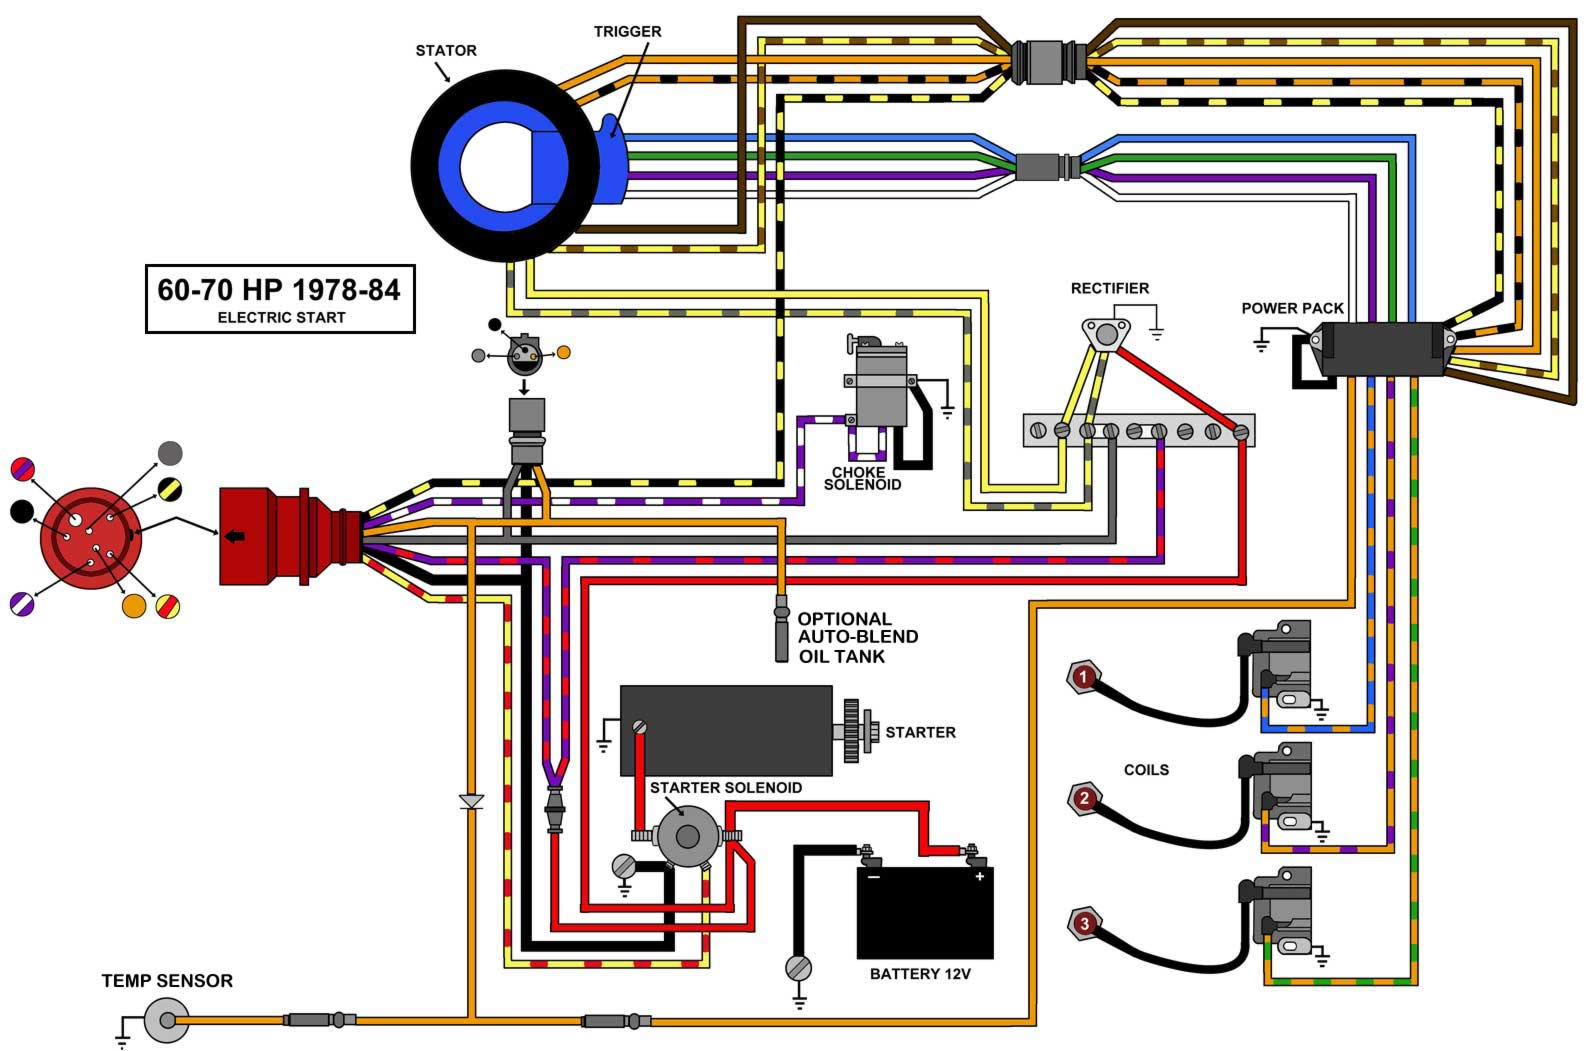 78 84_3 CYL_EL omc wiring harness diagram johmson wiring harness \u2022 wiring Boat Ignition Switch Wiring Diagram at cos-gaming.co